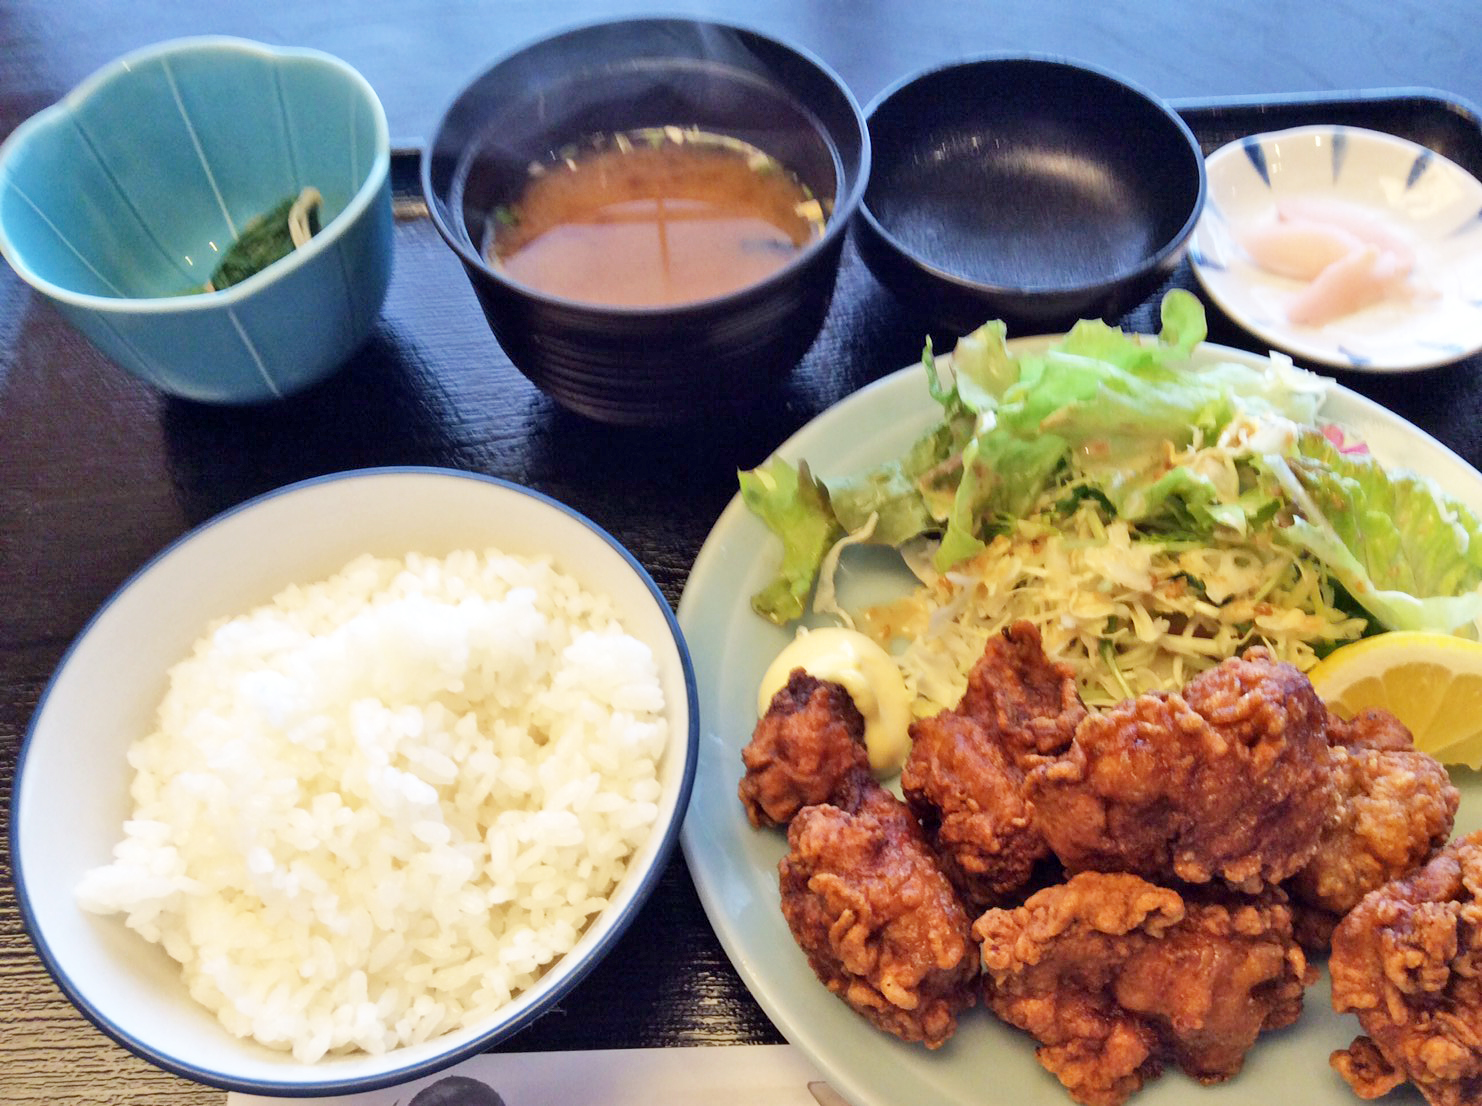 Deep fried chicken lunch set